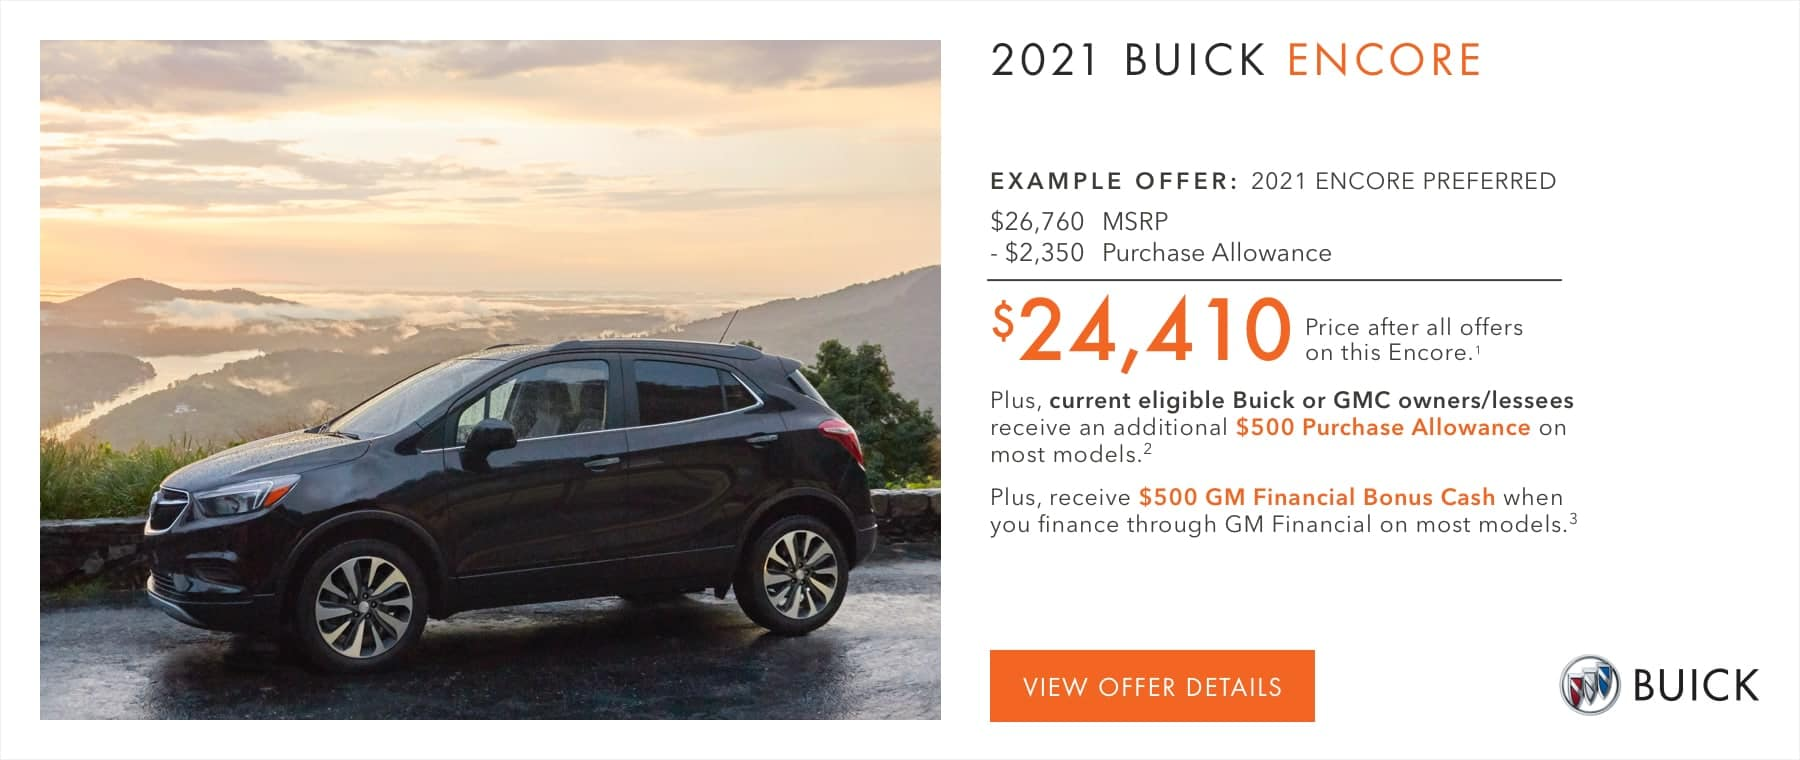 EXAMPLE OFFER: 2021 Encore Preferred $26,760 MSRP -$2,350 Purchase Allowance $24,410 Price after all offers on this Encore.1 Plus, current eligible Buick or GMC owners/lessees receive an additional $500 Purchase Allowance on most models.2 Plus, receive $500 GM Financial Bonus Cash when you finance through GM Financial on most models.3